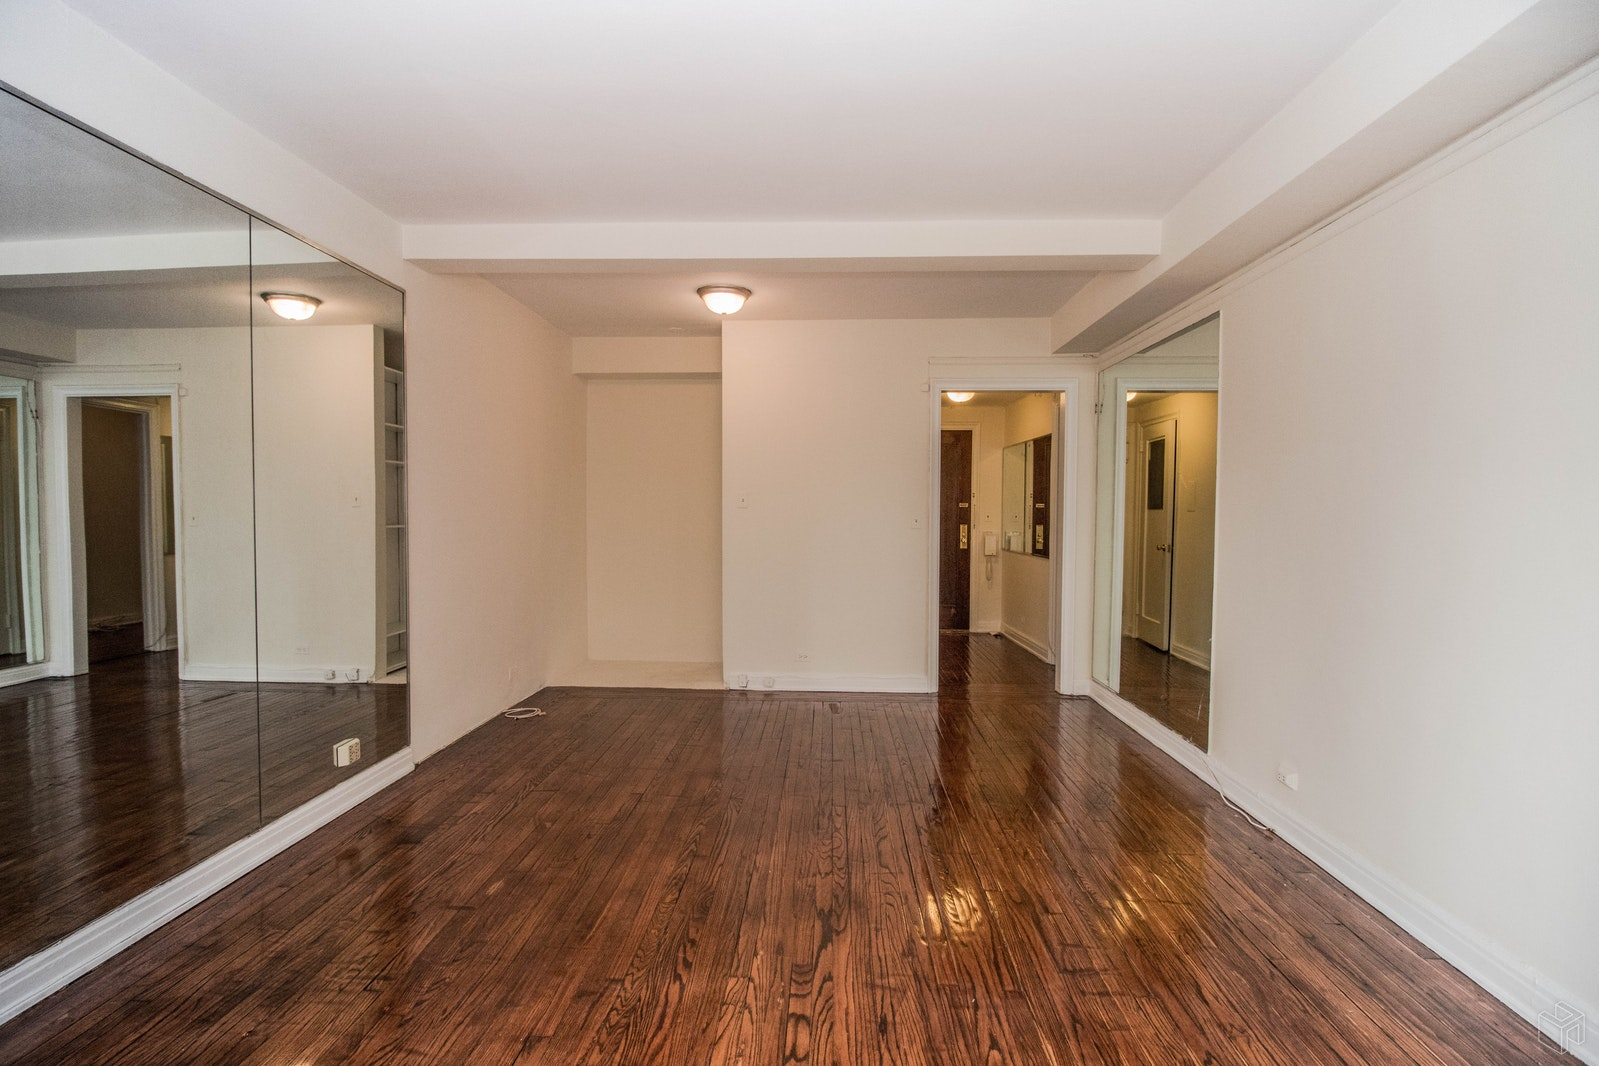 350 West 57th Street 5c, Midtown West, NYC, 10019, Price Not Disclosed, Rented Property, Halstead Real Estate, Photo 5